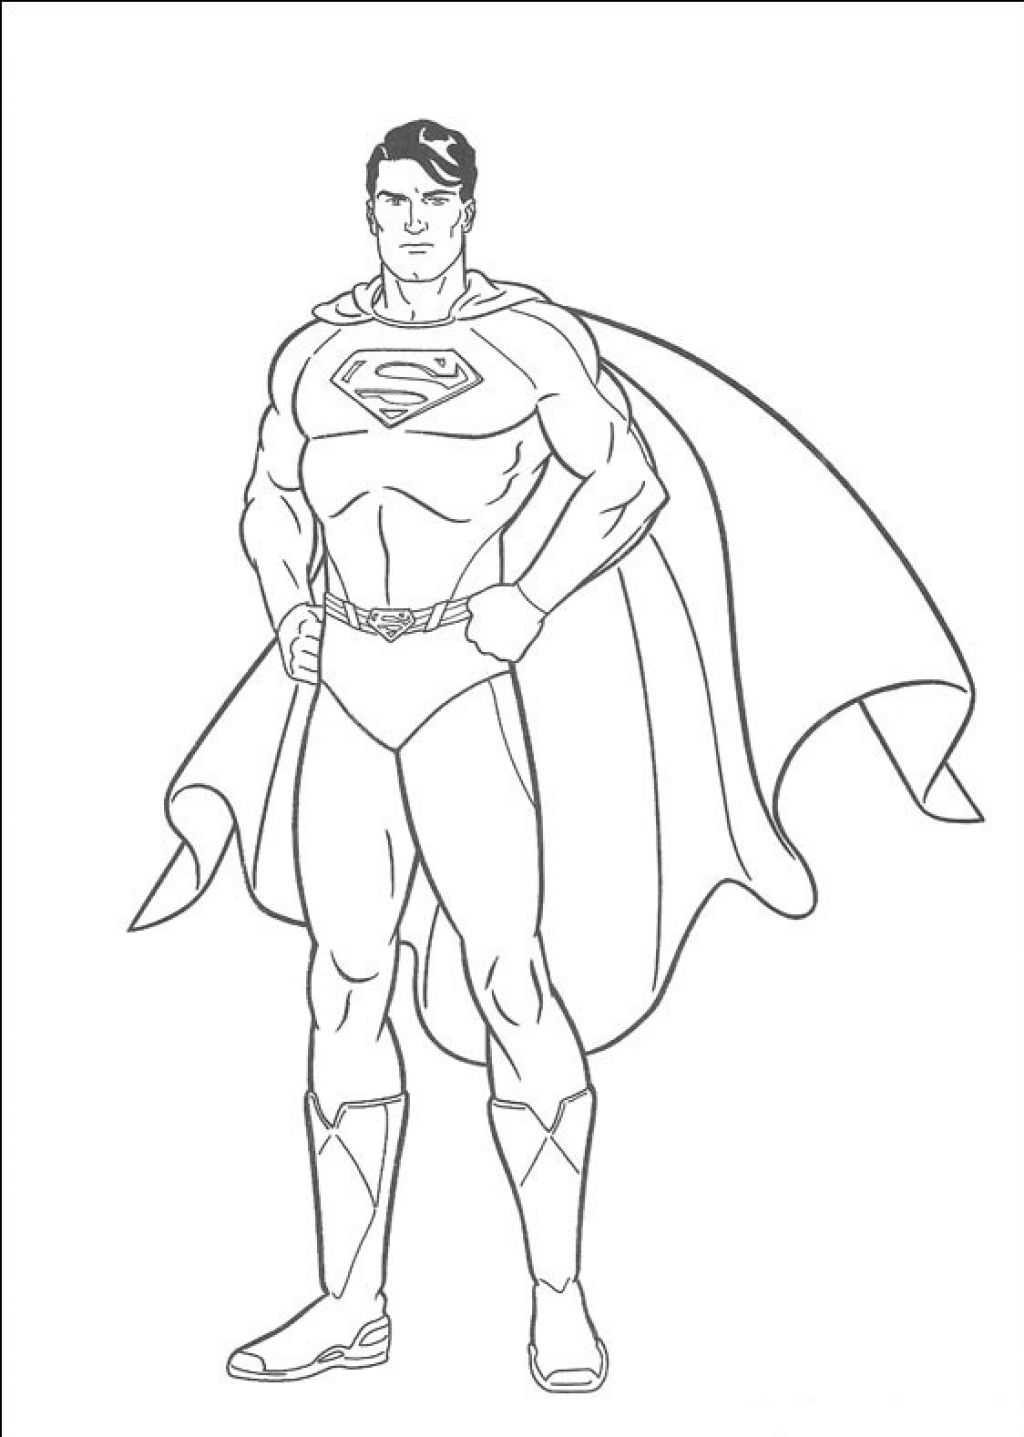 superman color free superman coloring pages for boys kids coloring pages color superman